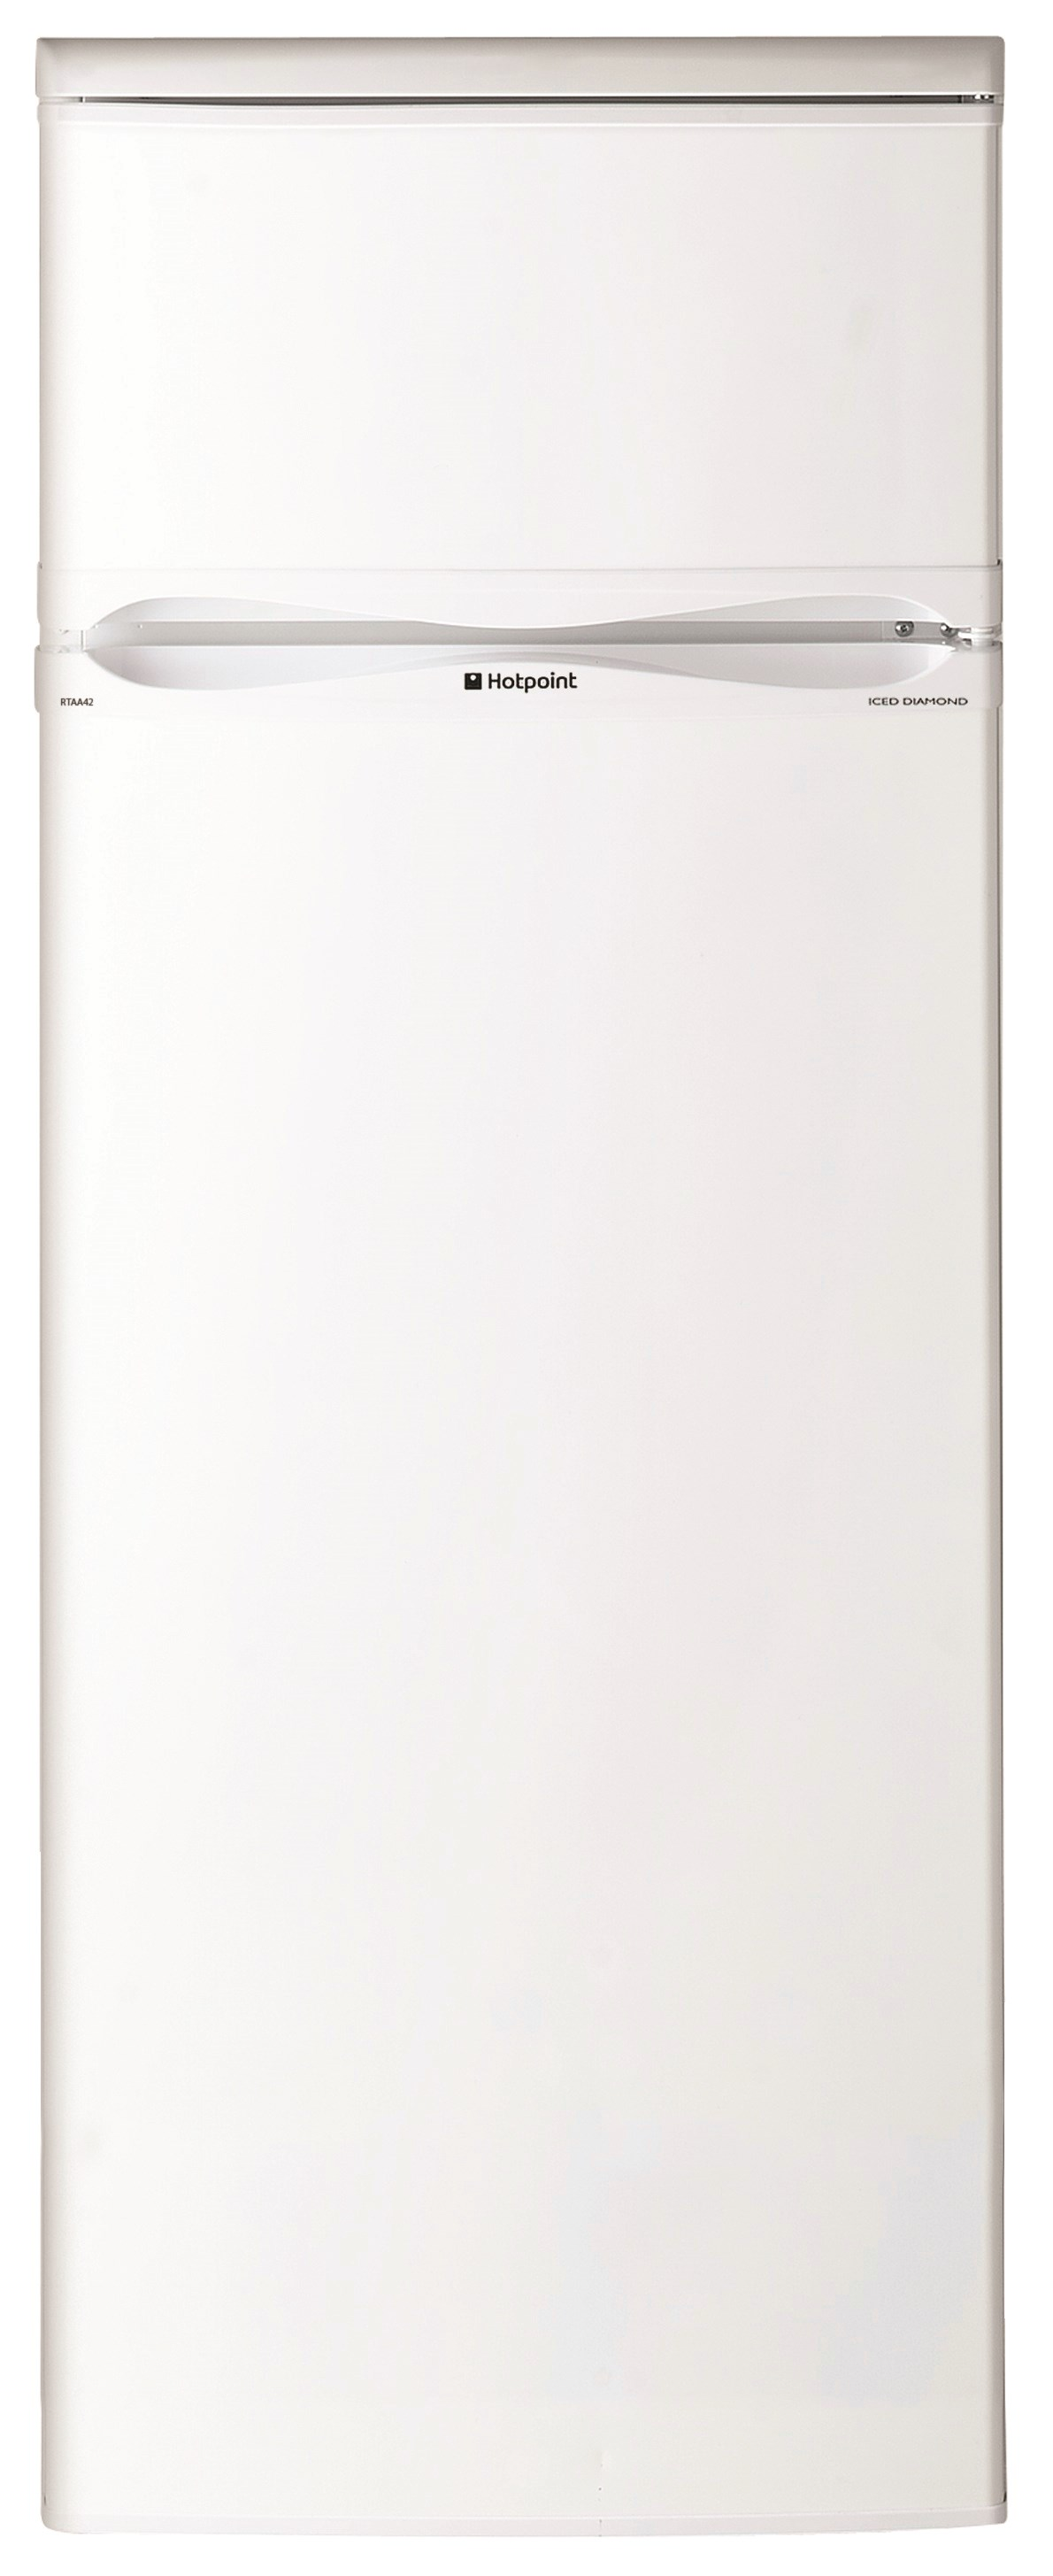 Hotpoint  White Freestanding Fridge Freezer - MT1A131